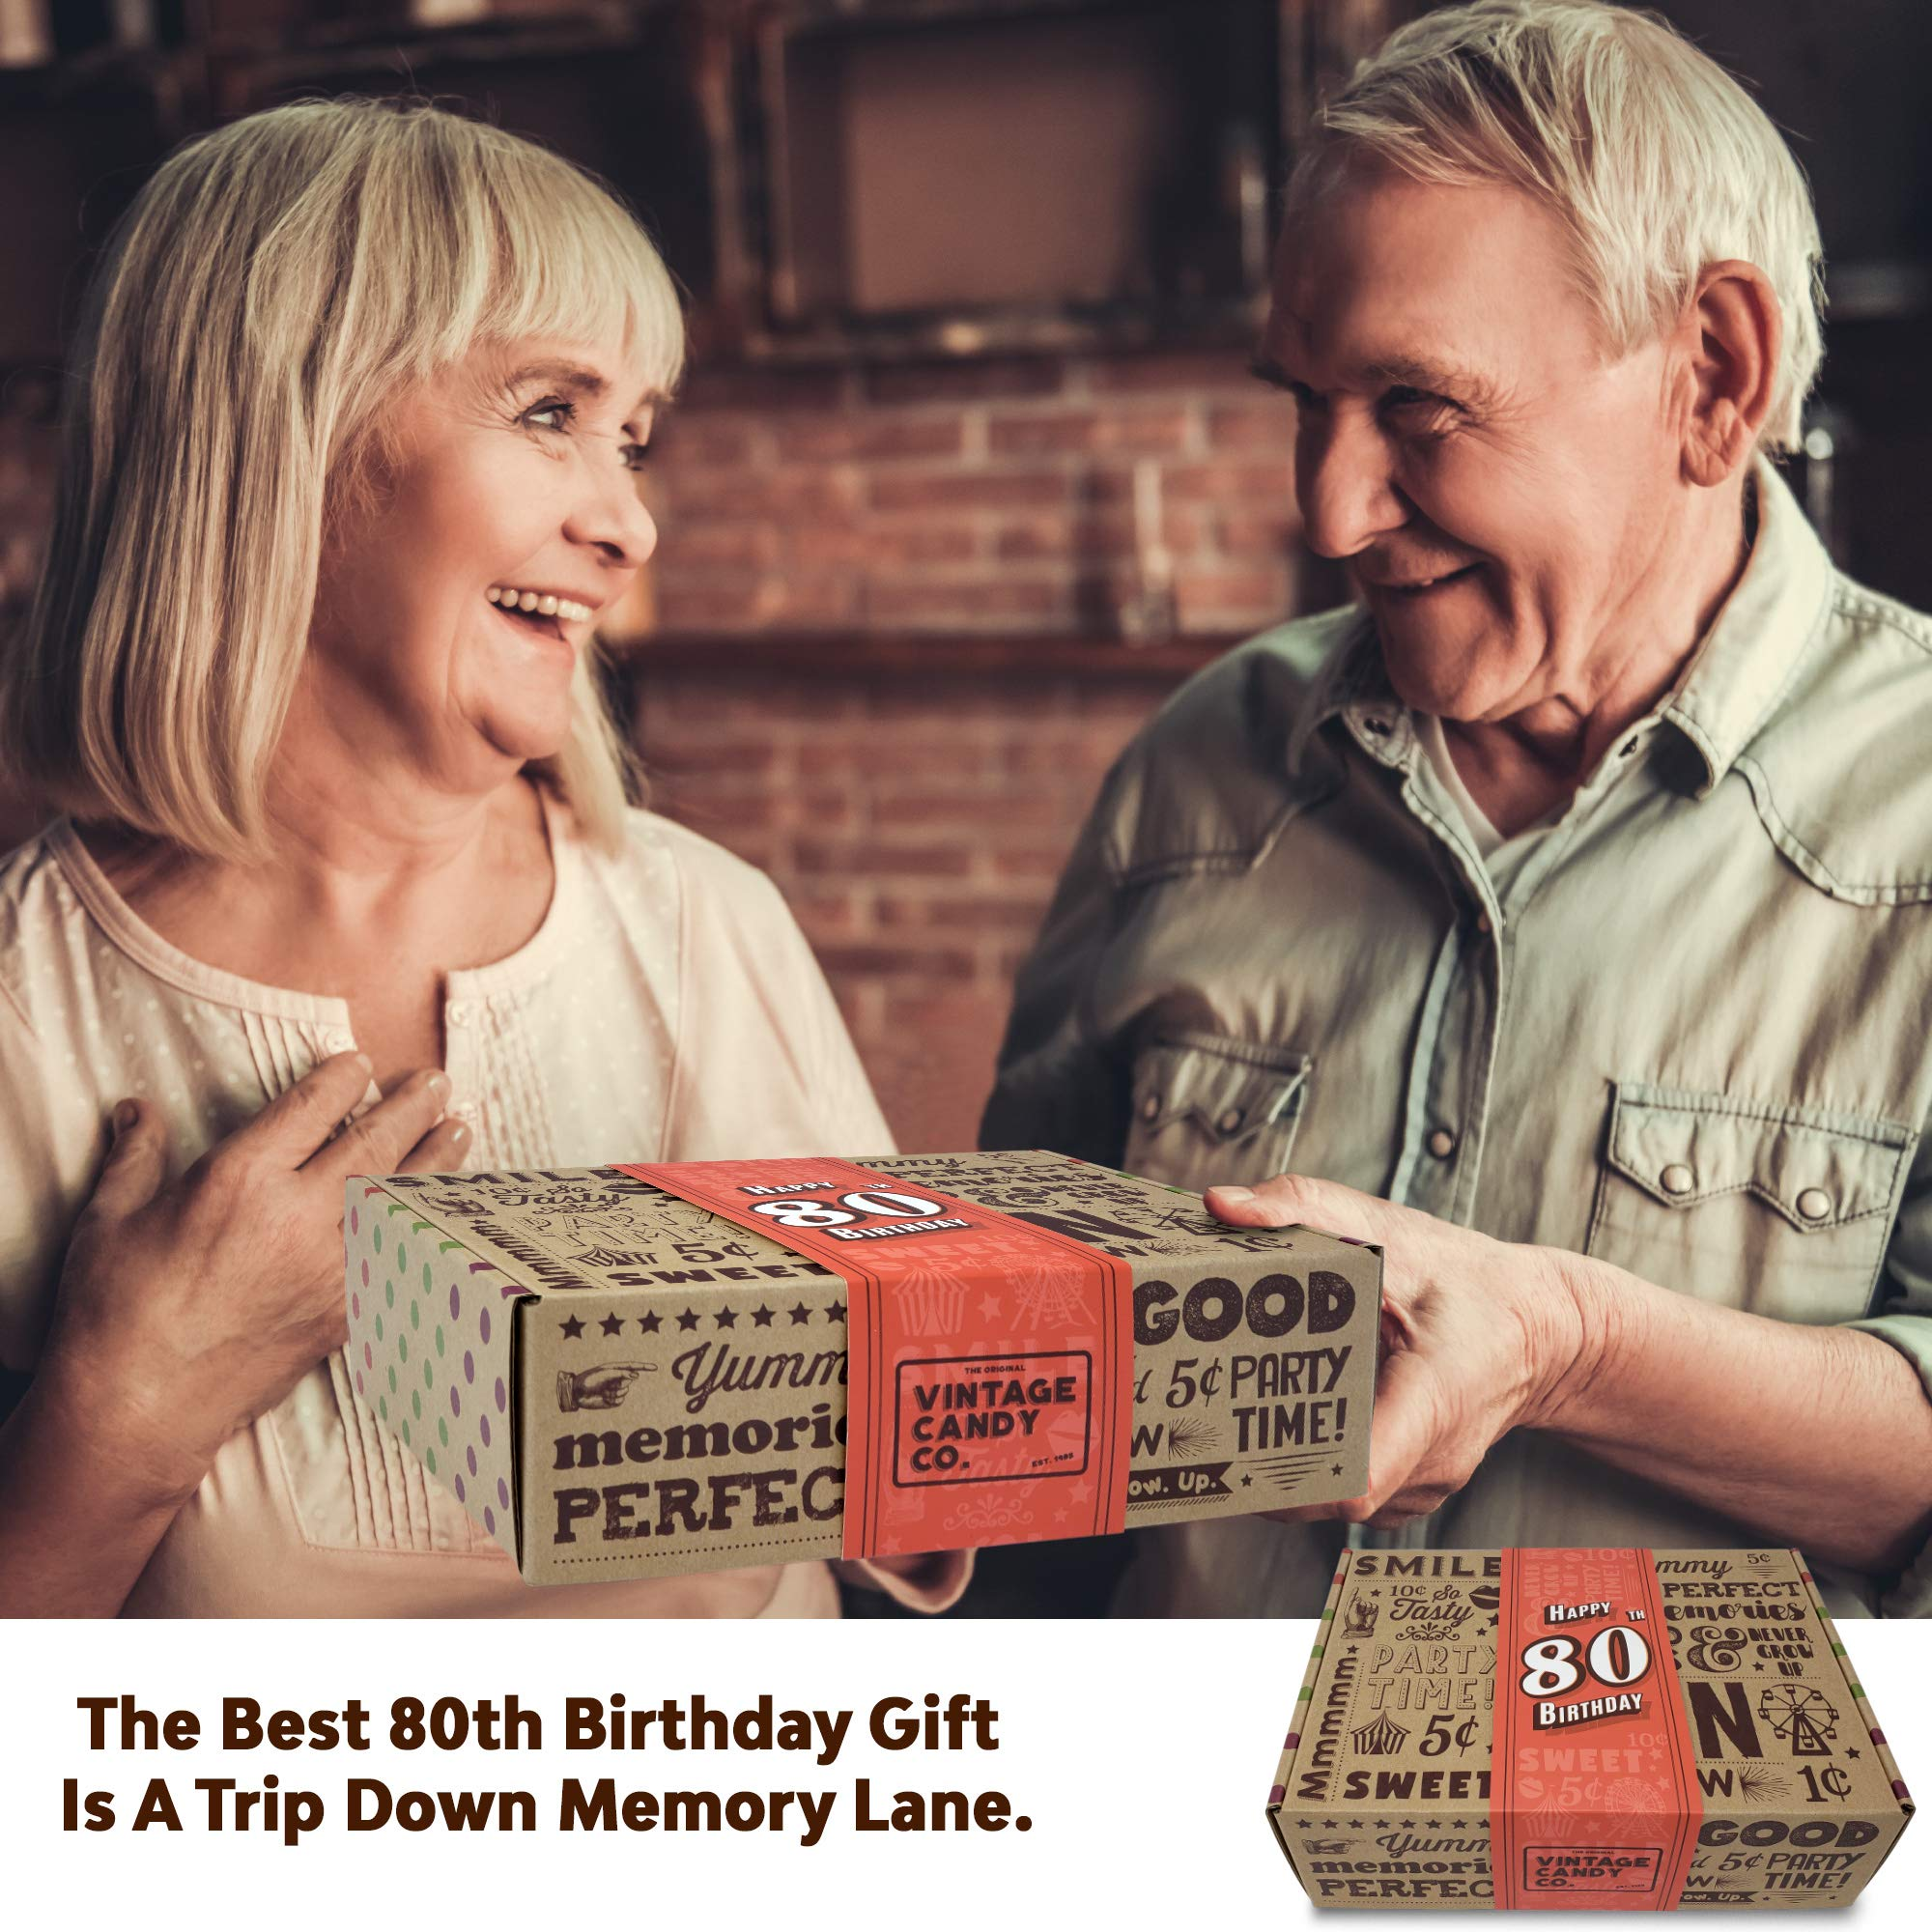 VINTAGE CANDY CO. 80TH BIRTHDAY RETRO CANDY GIFT BOX - 1939 Decade Nostalgic Childhood Candies - Fun Gag Gift Basket for Milestone EIGHTIETH Birthday - PERFECT For Man Or Woman Turning 80 Years Old by Vintage Candy Co. (Image #7)